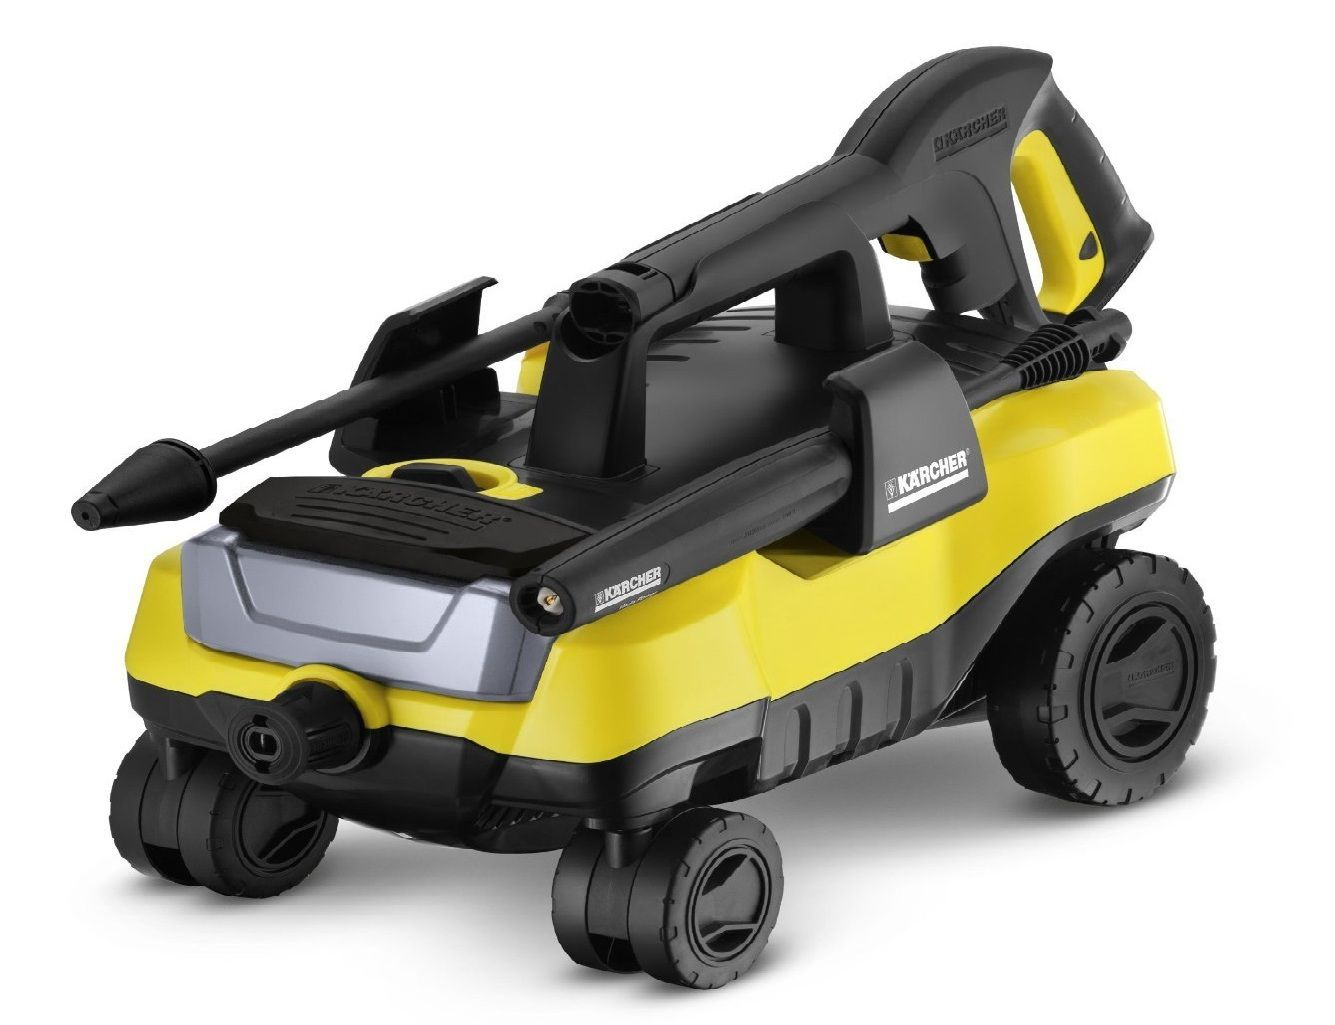 Karcher K3 Electric Pressure Washer Review